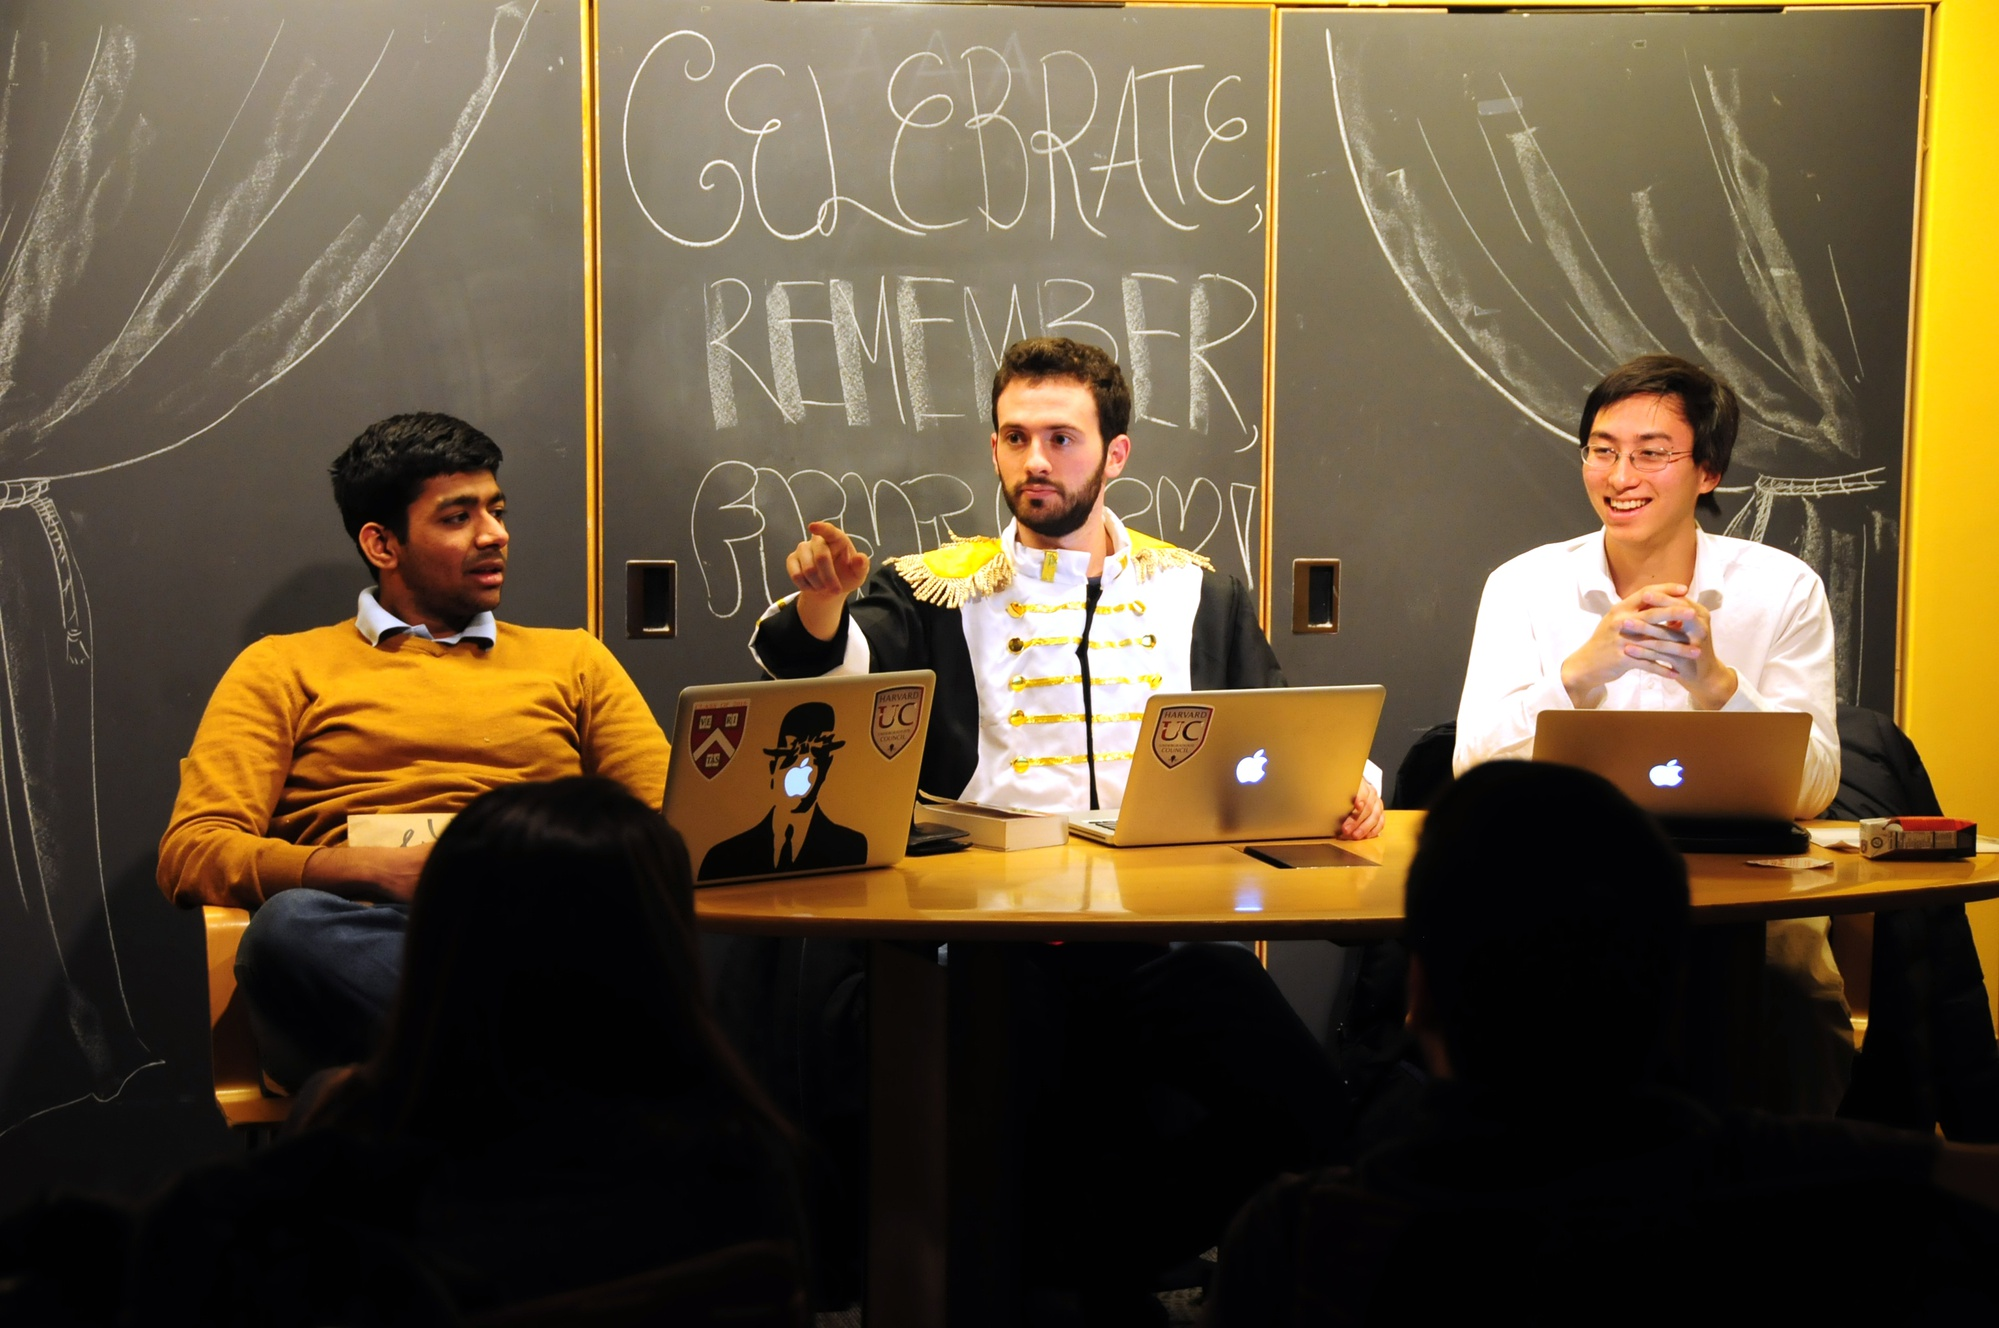 UC Treasurer Meghamsh Kanuparthy '16, left, President Gus A. Mayopoulos'15, center, and Vice-President Sietse K. Goffard'15, right, facilitate a discussion on the Council's progress in pursuing additional funding avenues.